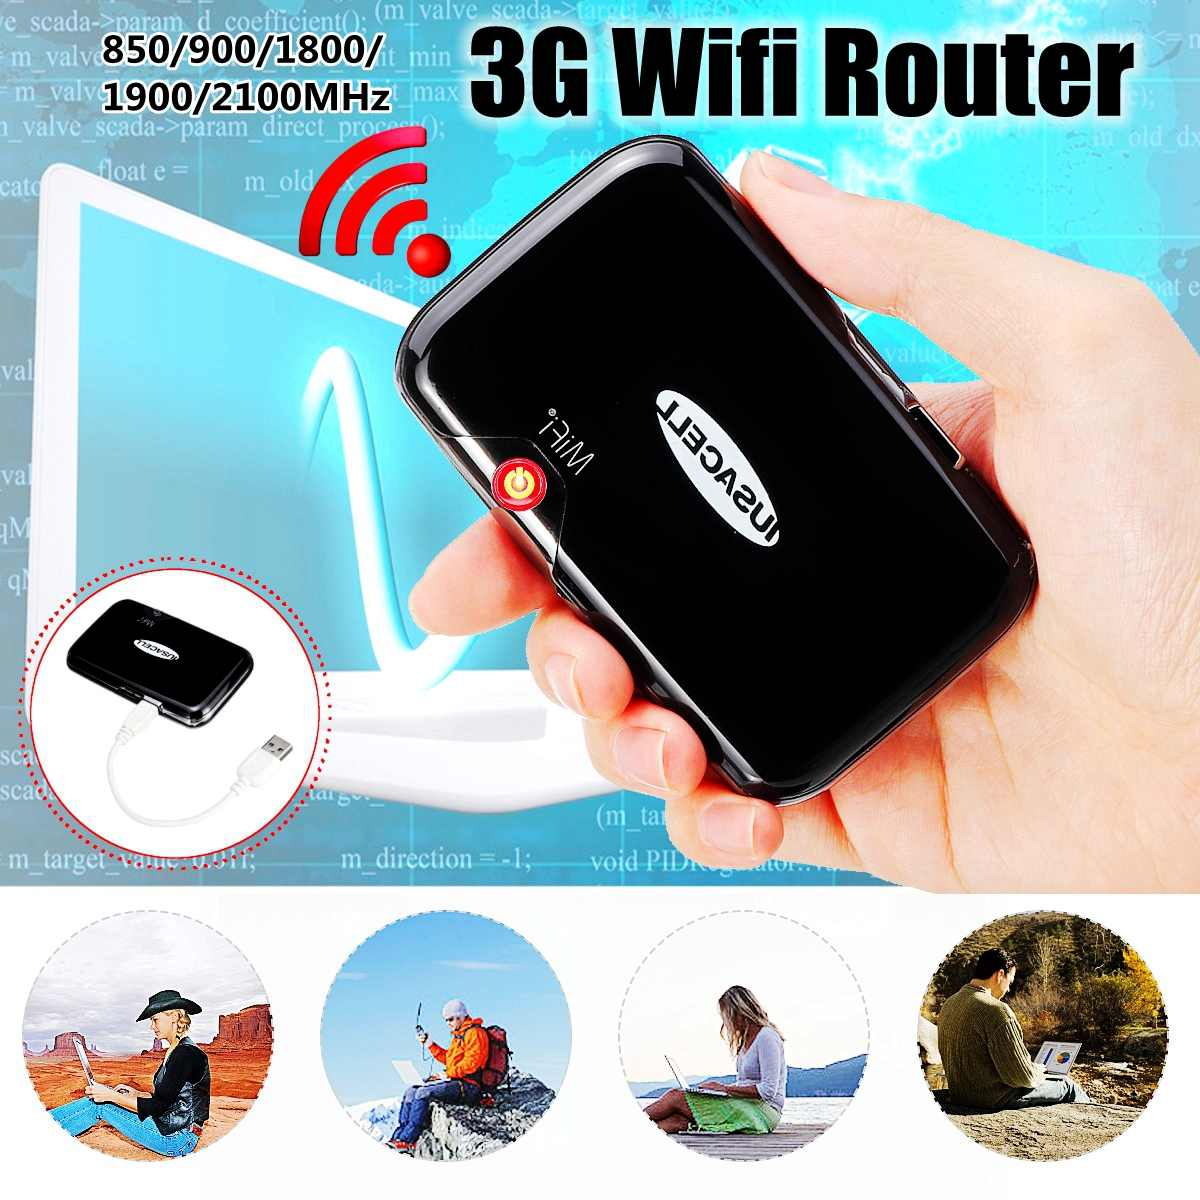 MF2372 3G Pockets Wifi Router Portable Car Mobile Wifi Hotspot Wireless Broadband Unlockeds Modem 850/900/1800/1900/2100MHz